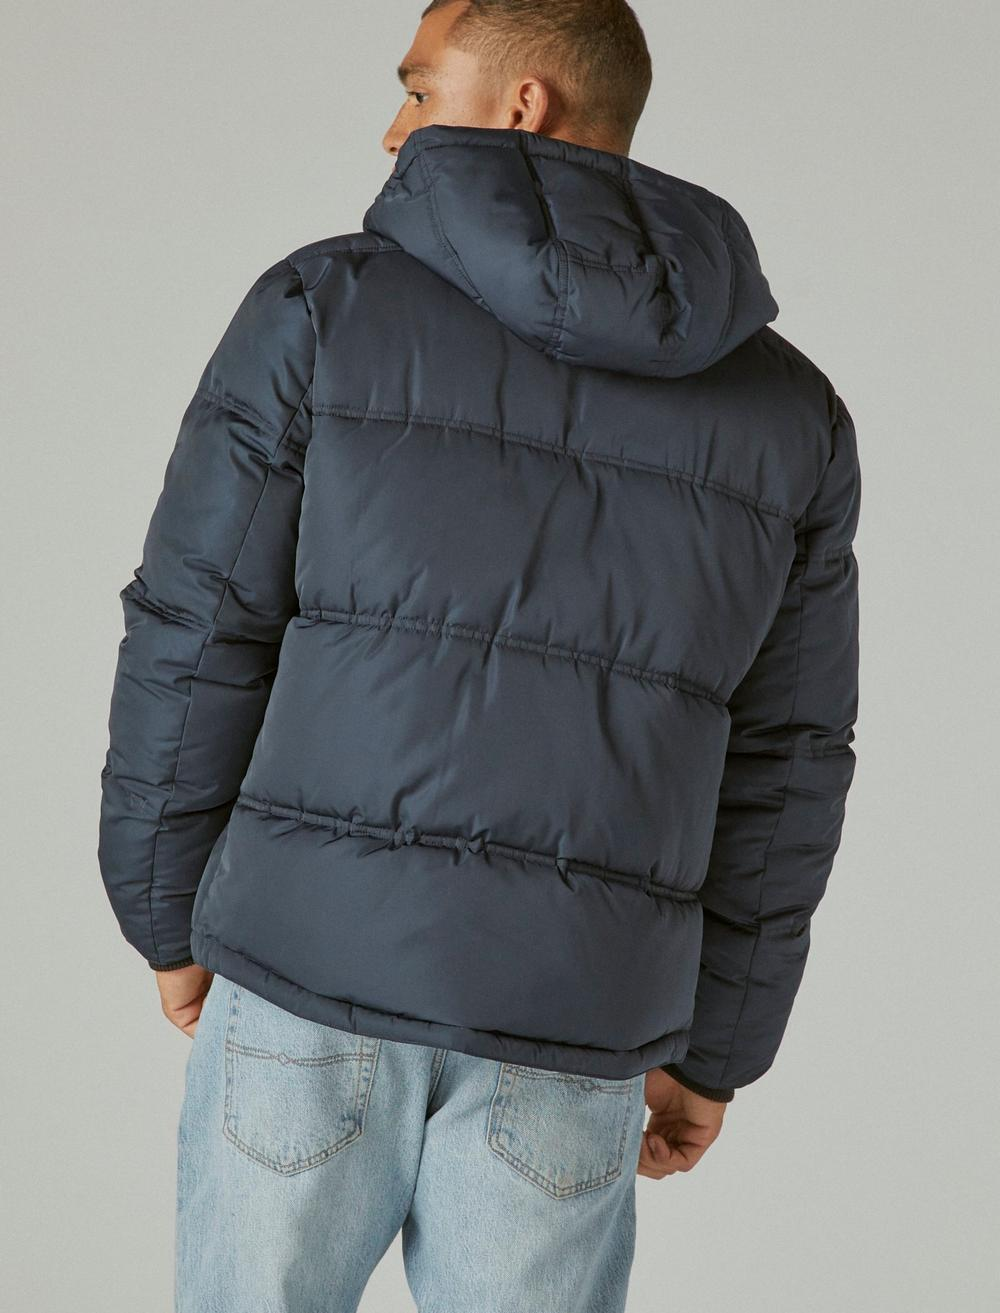 POLY TWILL HOODED HIPSTER JACKET, image 4